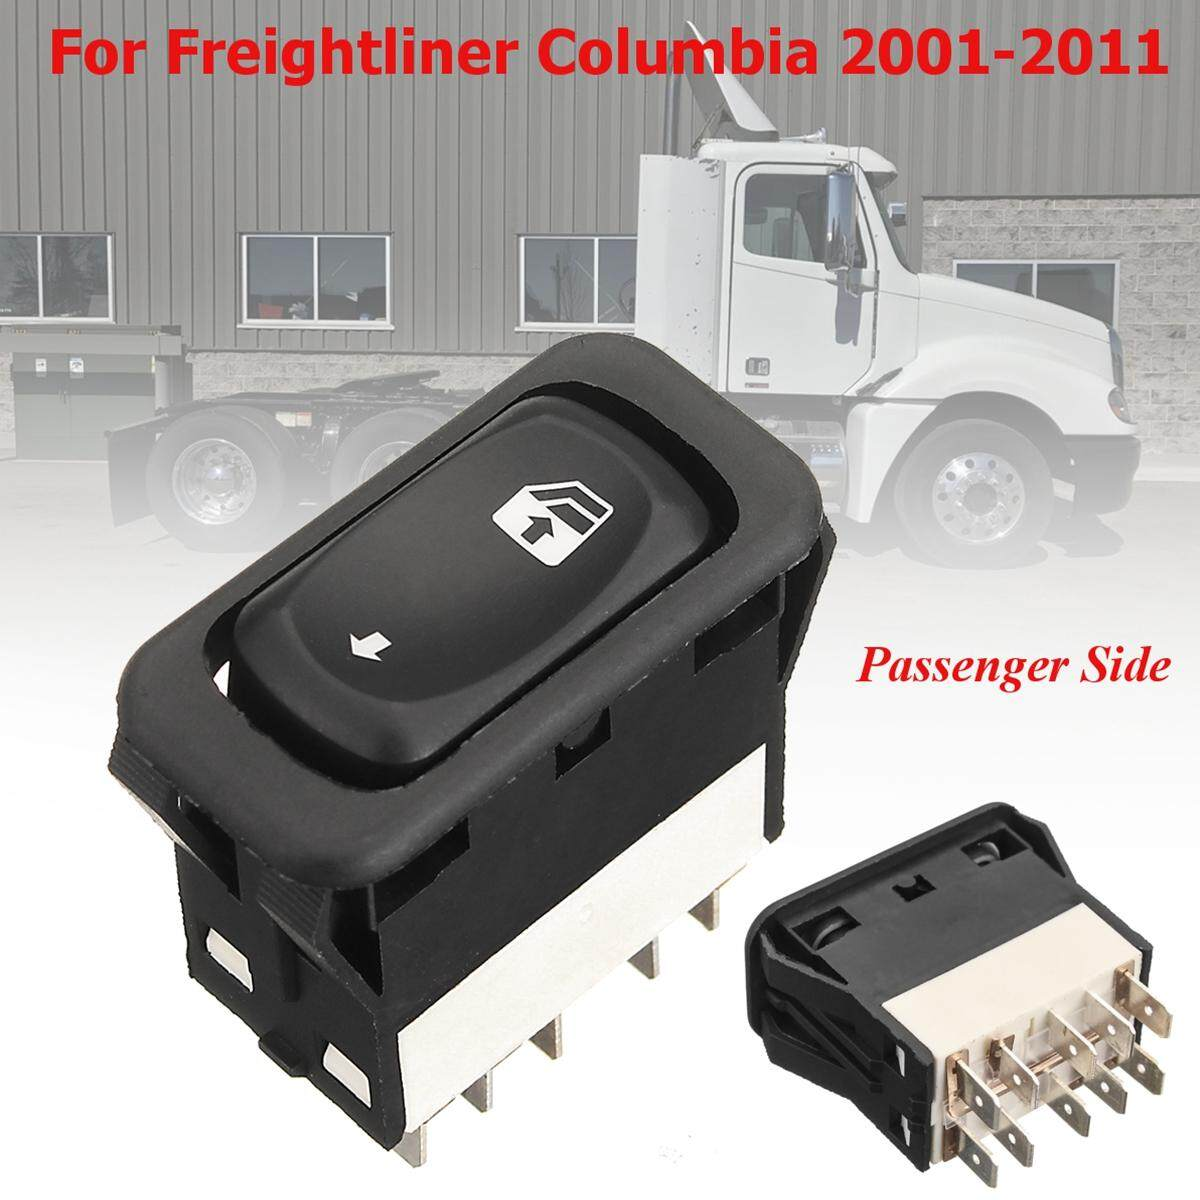 Passenger Side ABS Electric Window Switch For Freightliner Columbia 2001-2011 - intl